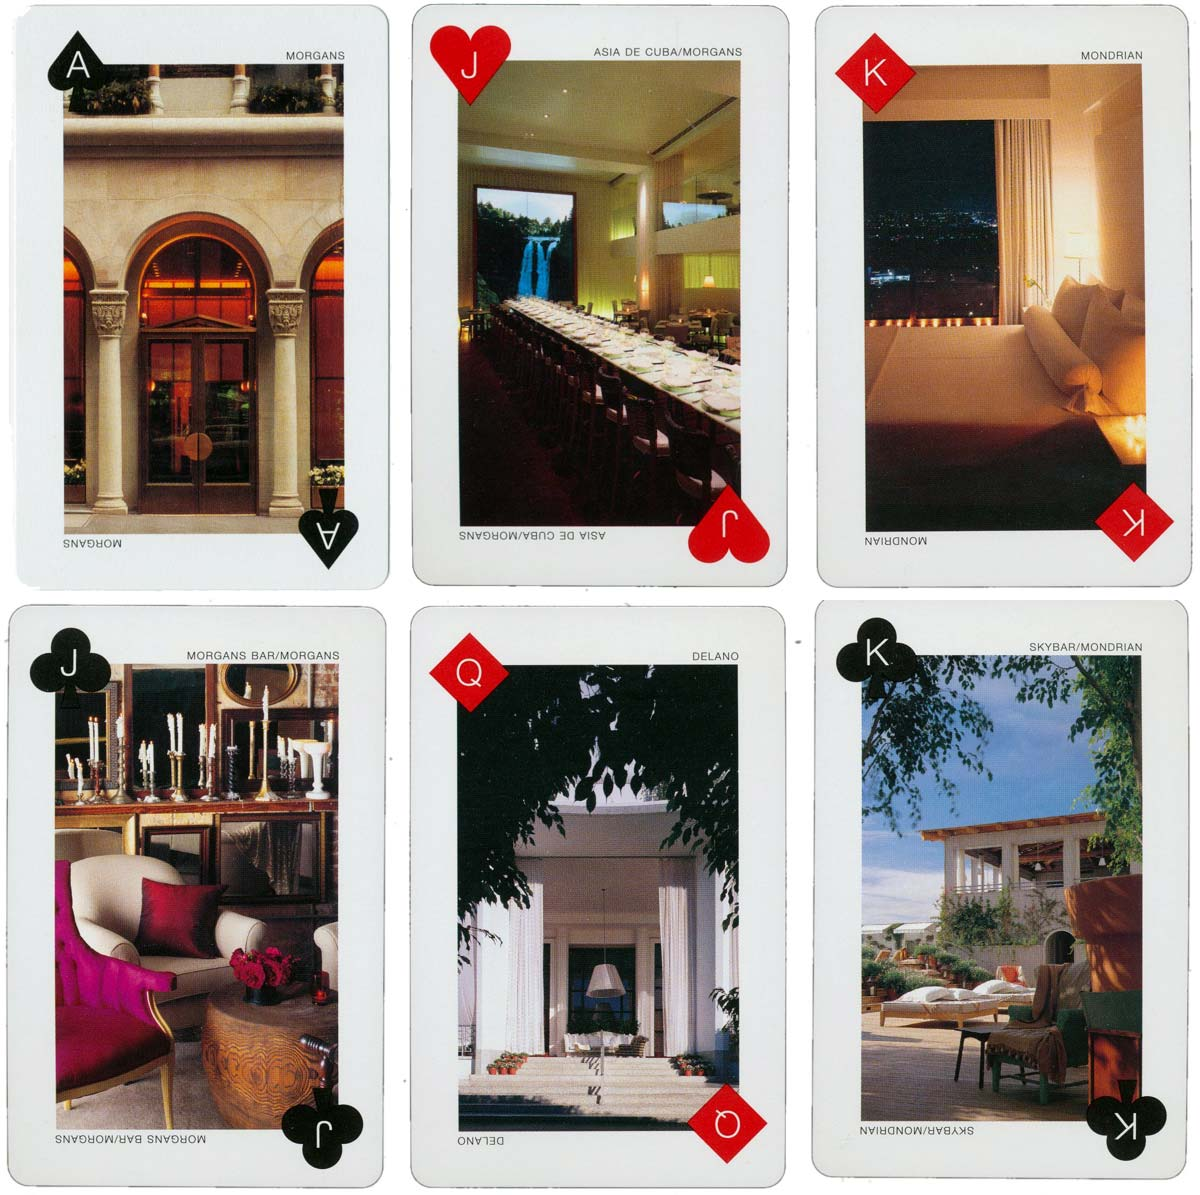 Advertising/souvenir deck of cards associated with the Ian Schrager chain of luxury hotels